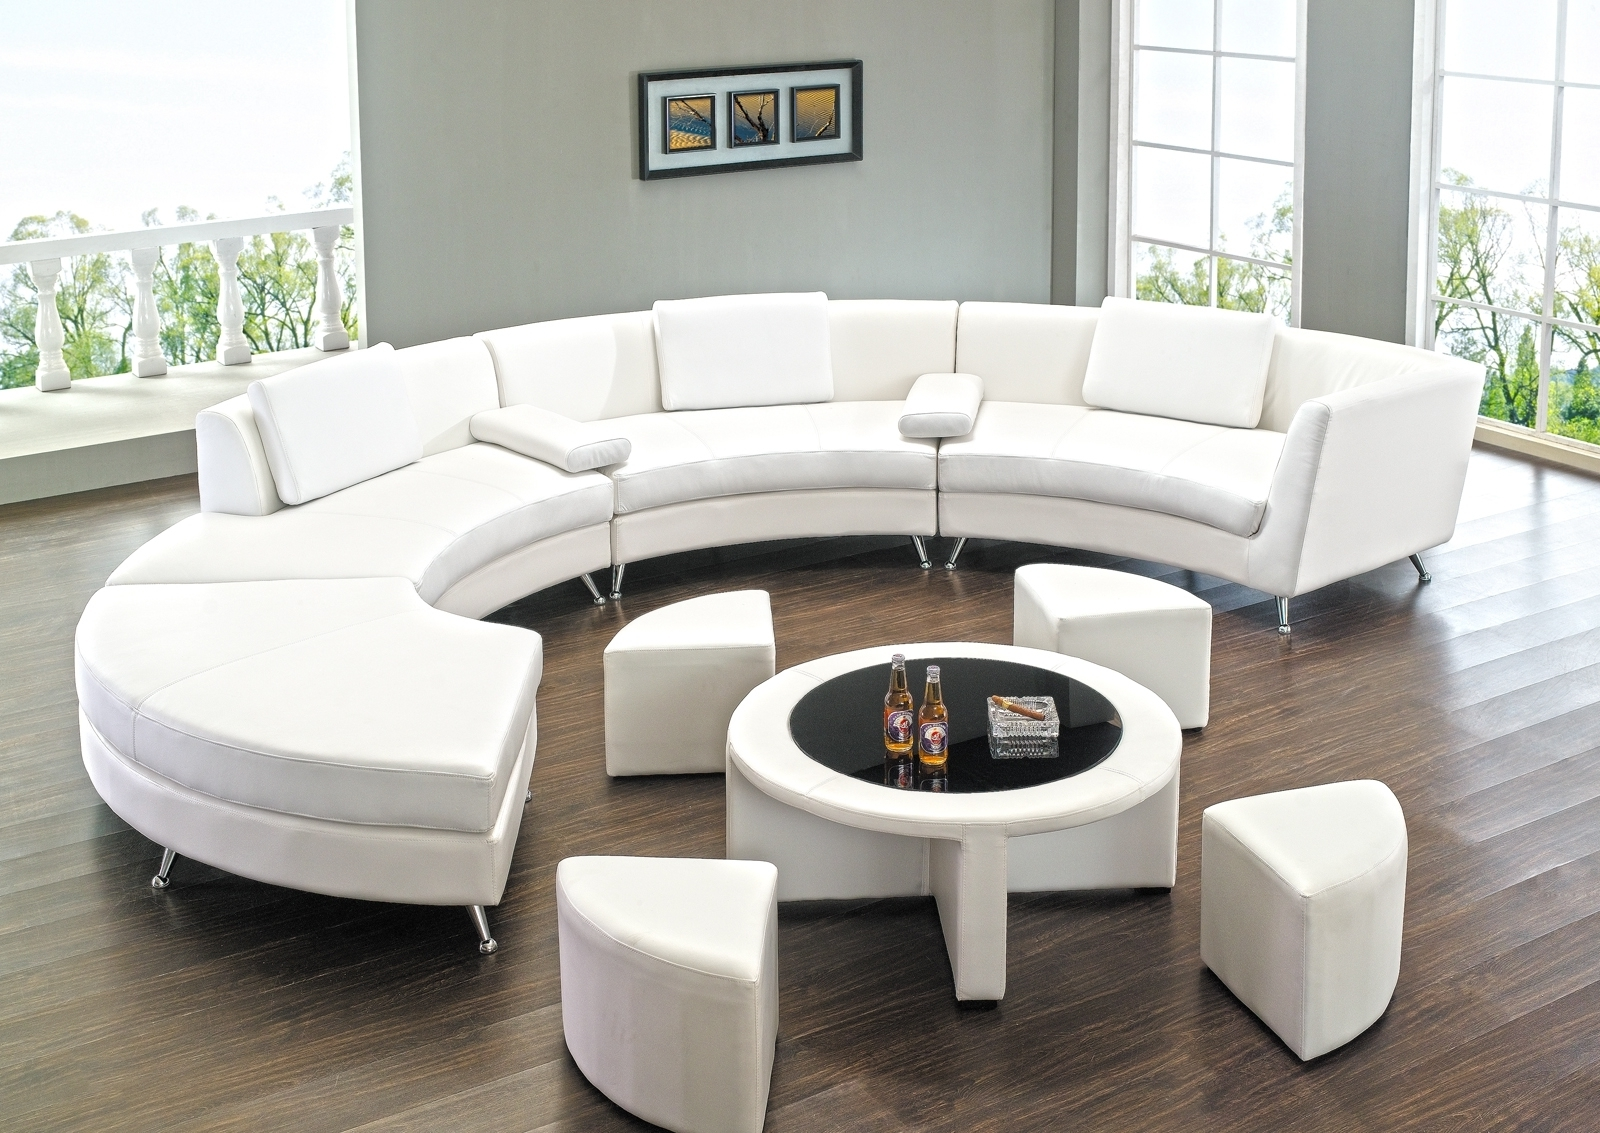 Round Sectional Sofa Has One Of The Best Kind Of Other Is Within Most Recently Released Circular Sectional Sofas (View 14 of 15)